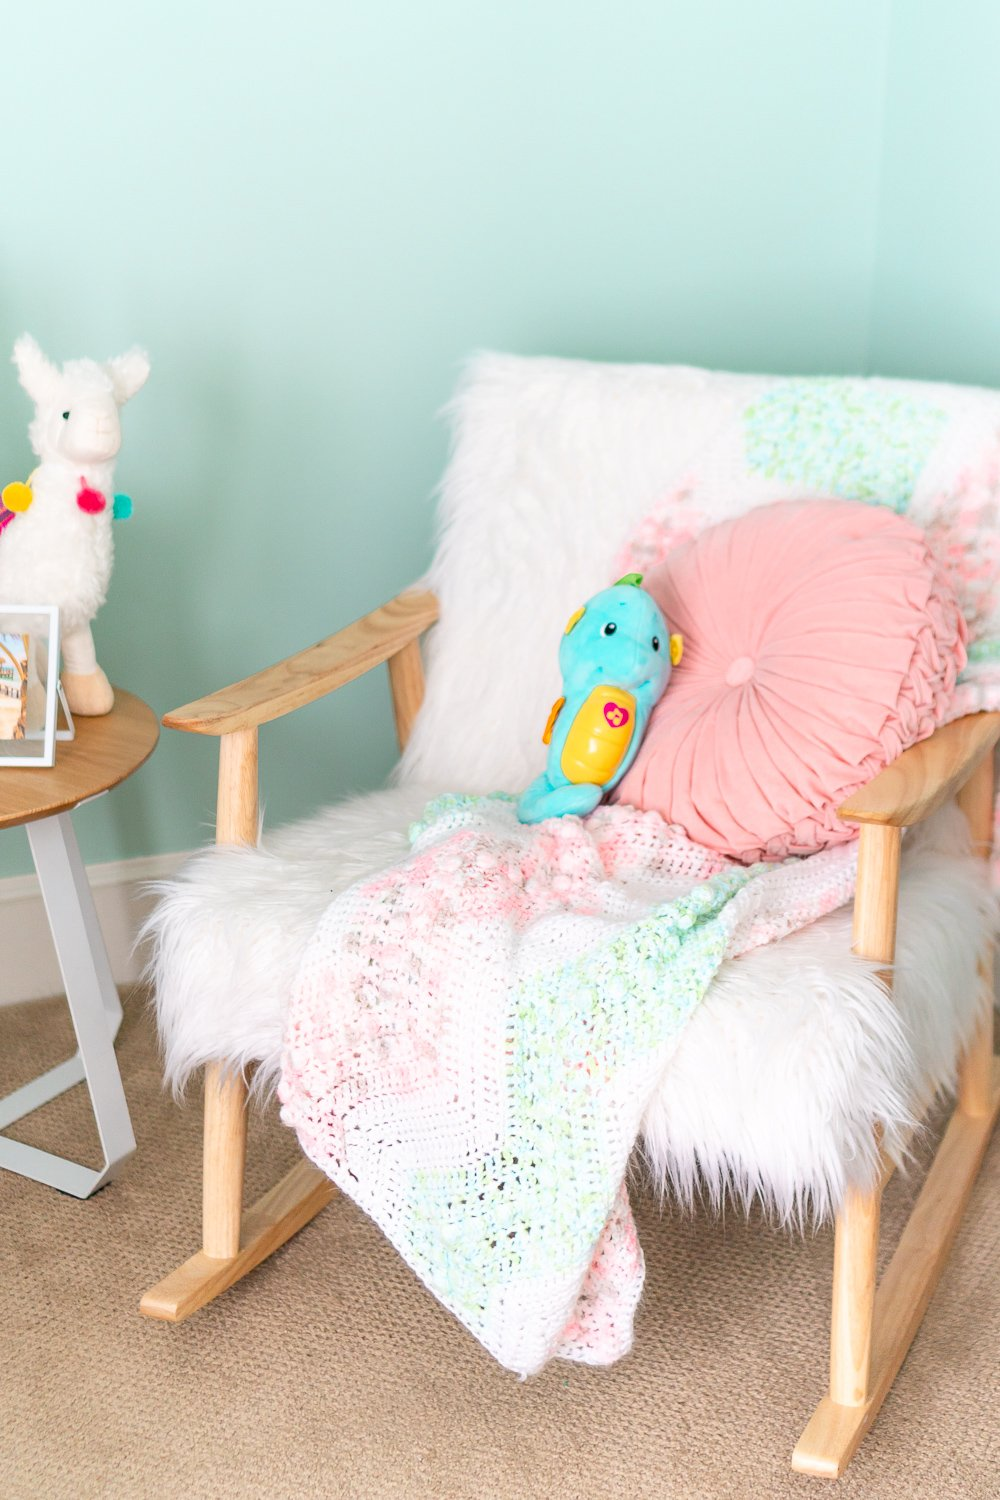 Faux Sheepskin and wooden rocking chair in a baby nursery with a knitted blanket and pink pillow on it.